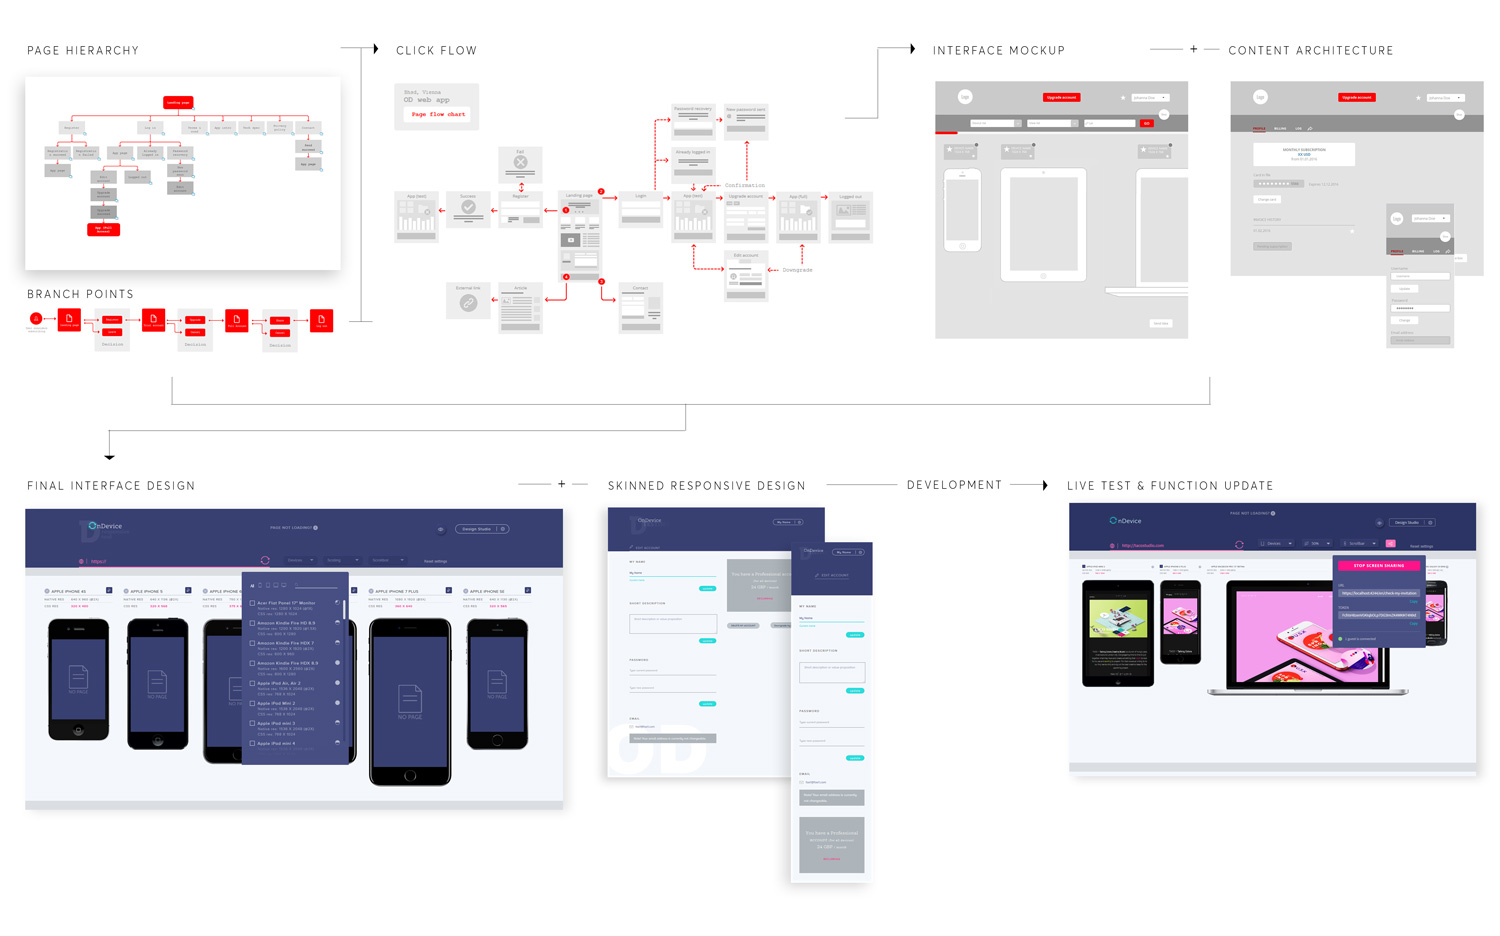 ondevice-app-development-phases